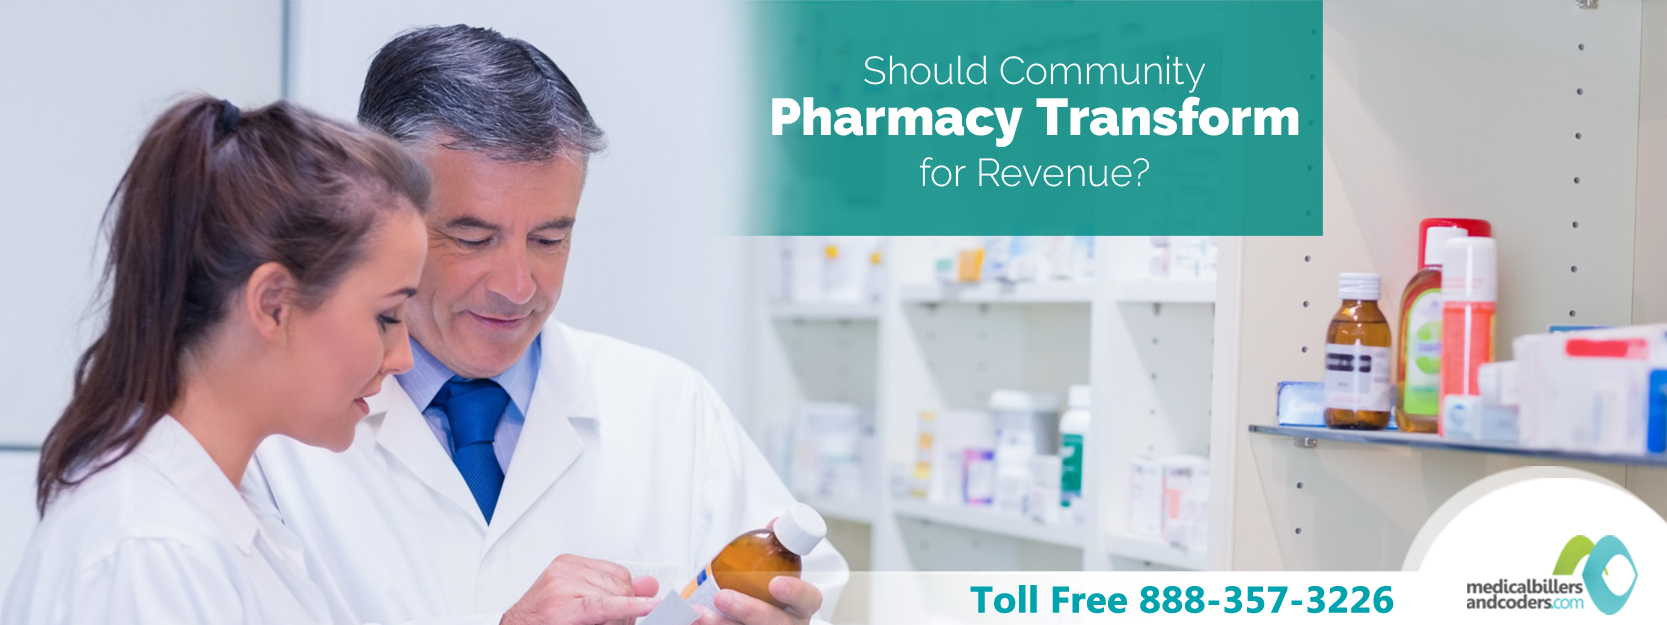 Should Community Pharmacy Transform For Revenue?